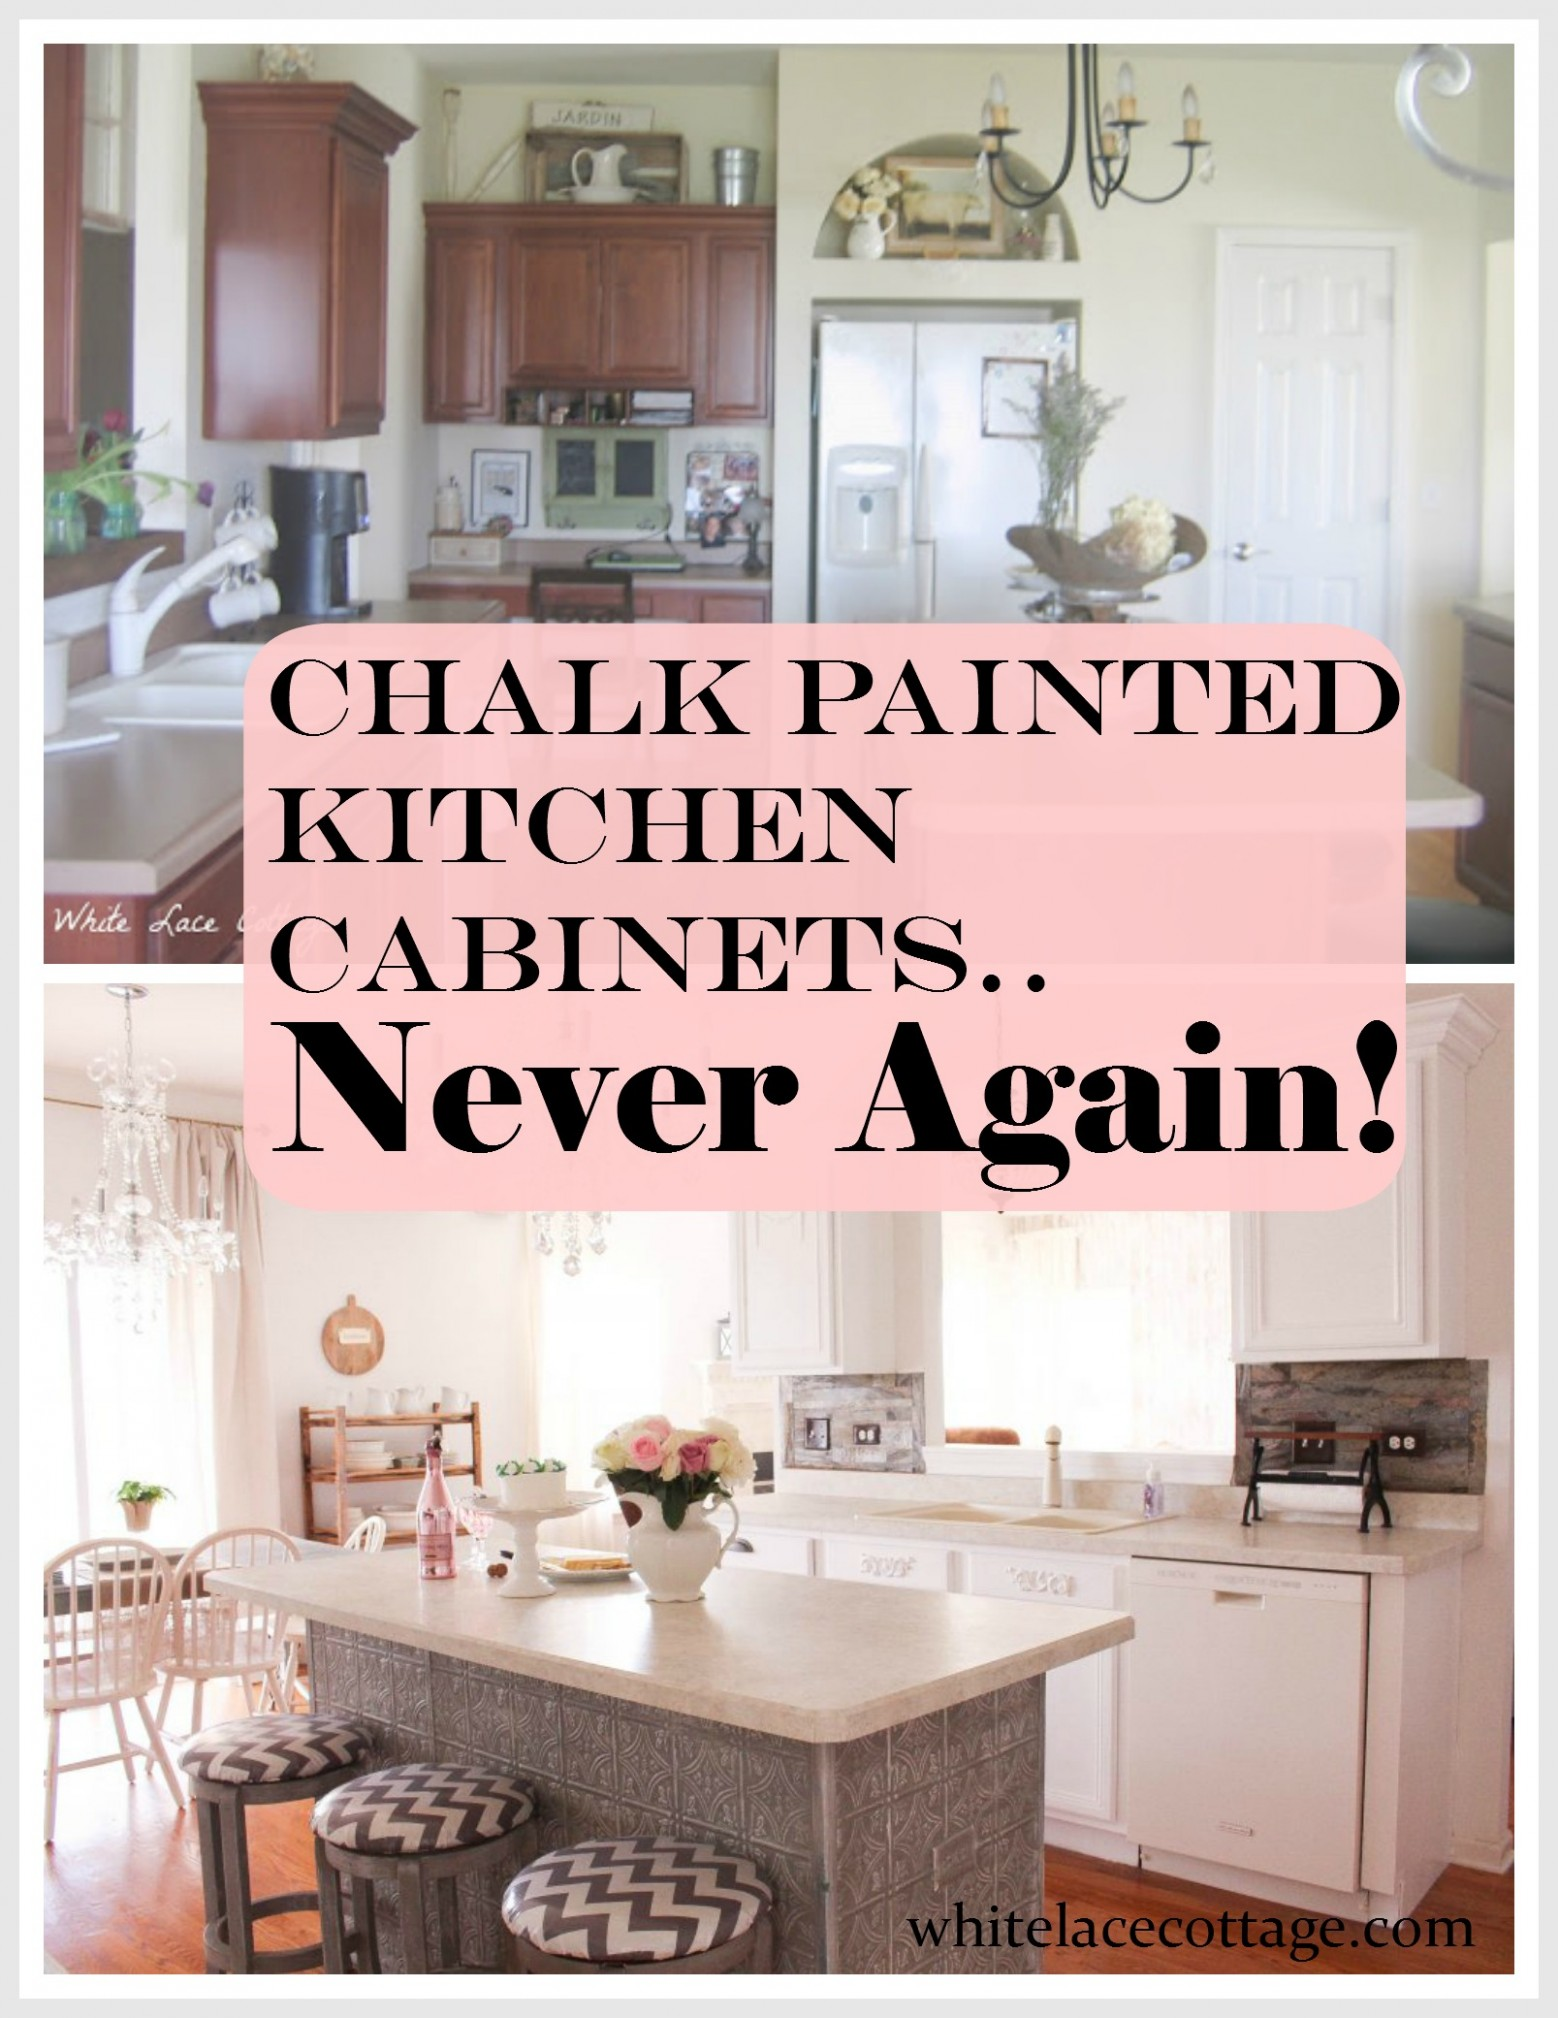 Chalk Painted Kitchen Cabinets Never Again! - ANNE P MAKEUP AND MORE - Diy Chalk Paint On Kitchen Cabinets